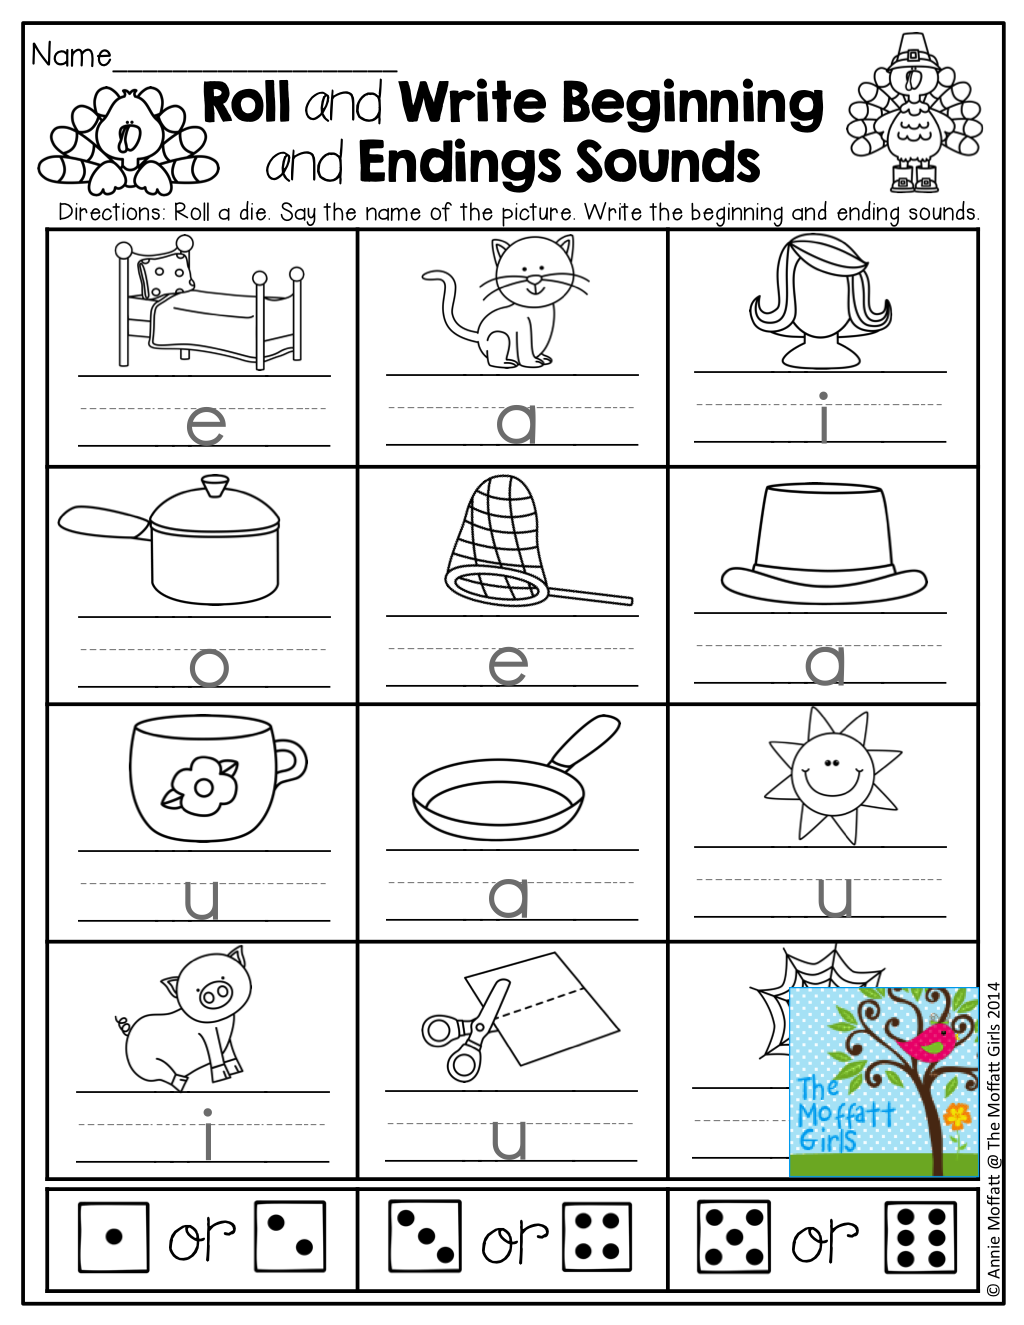 Cvc Words Beginning And Ending Sounds Roll A And Write The Beginning And Ending Sound